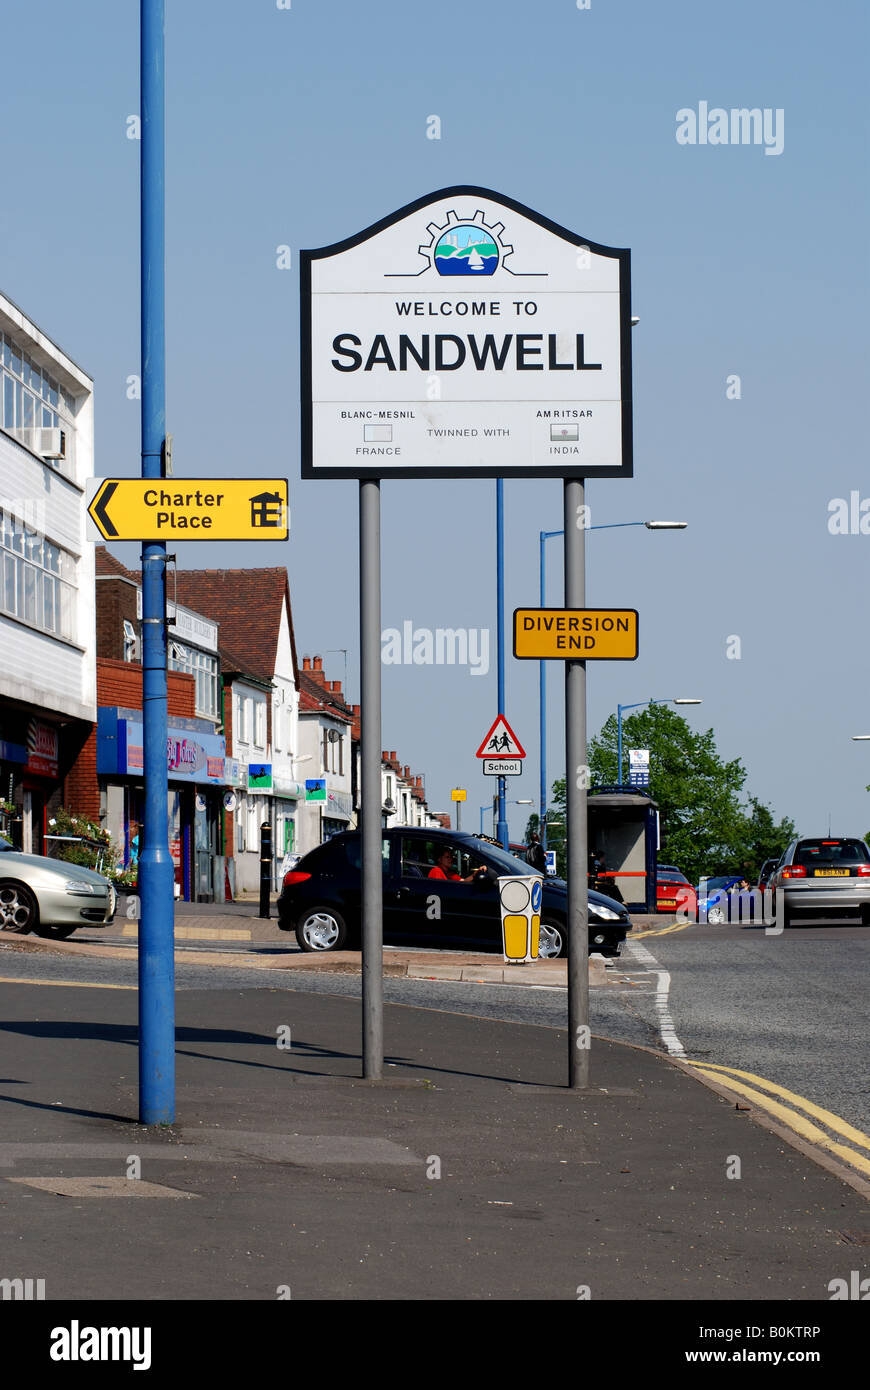 Sandwell sign in Quinton, West Midlands, England,  UK - Stock Image